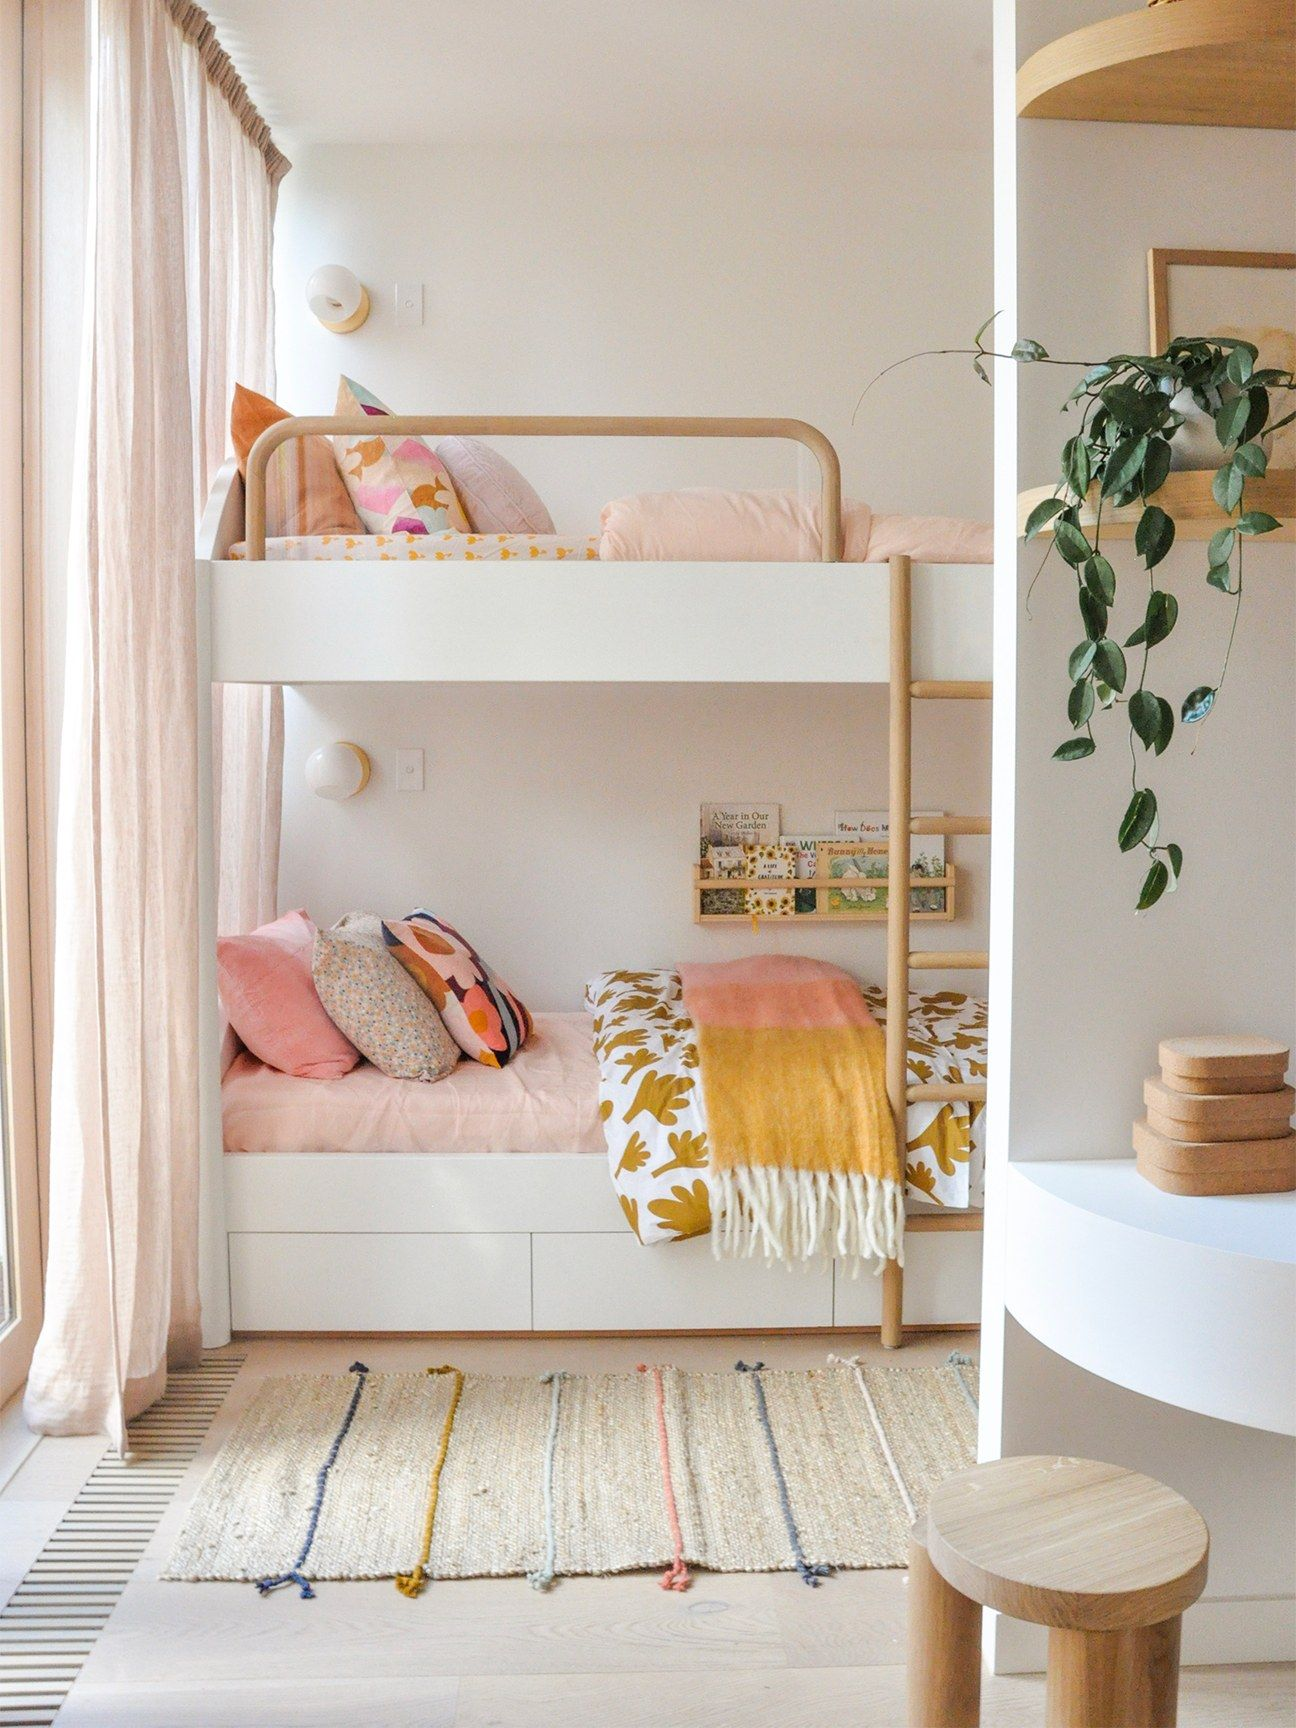 8 Bunk Bed Ideas Because Your Kids Nursery Deserves Better Girls Bunk Beds Bunk Beds Kids Room Design